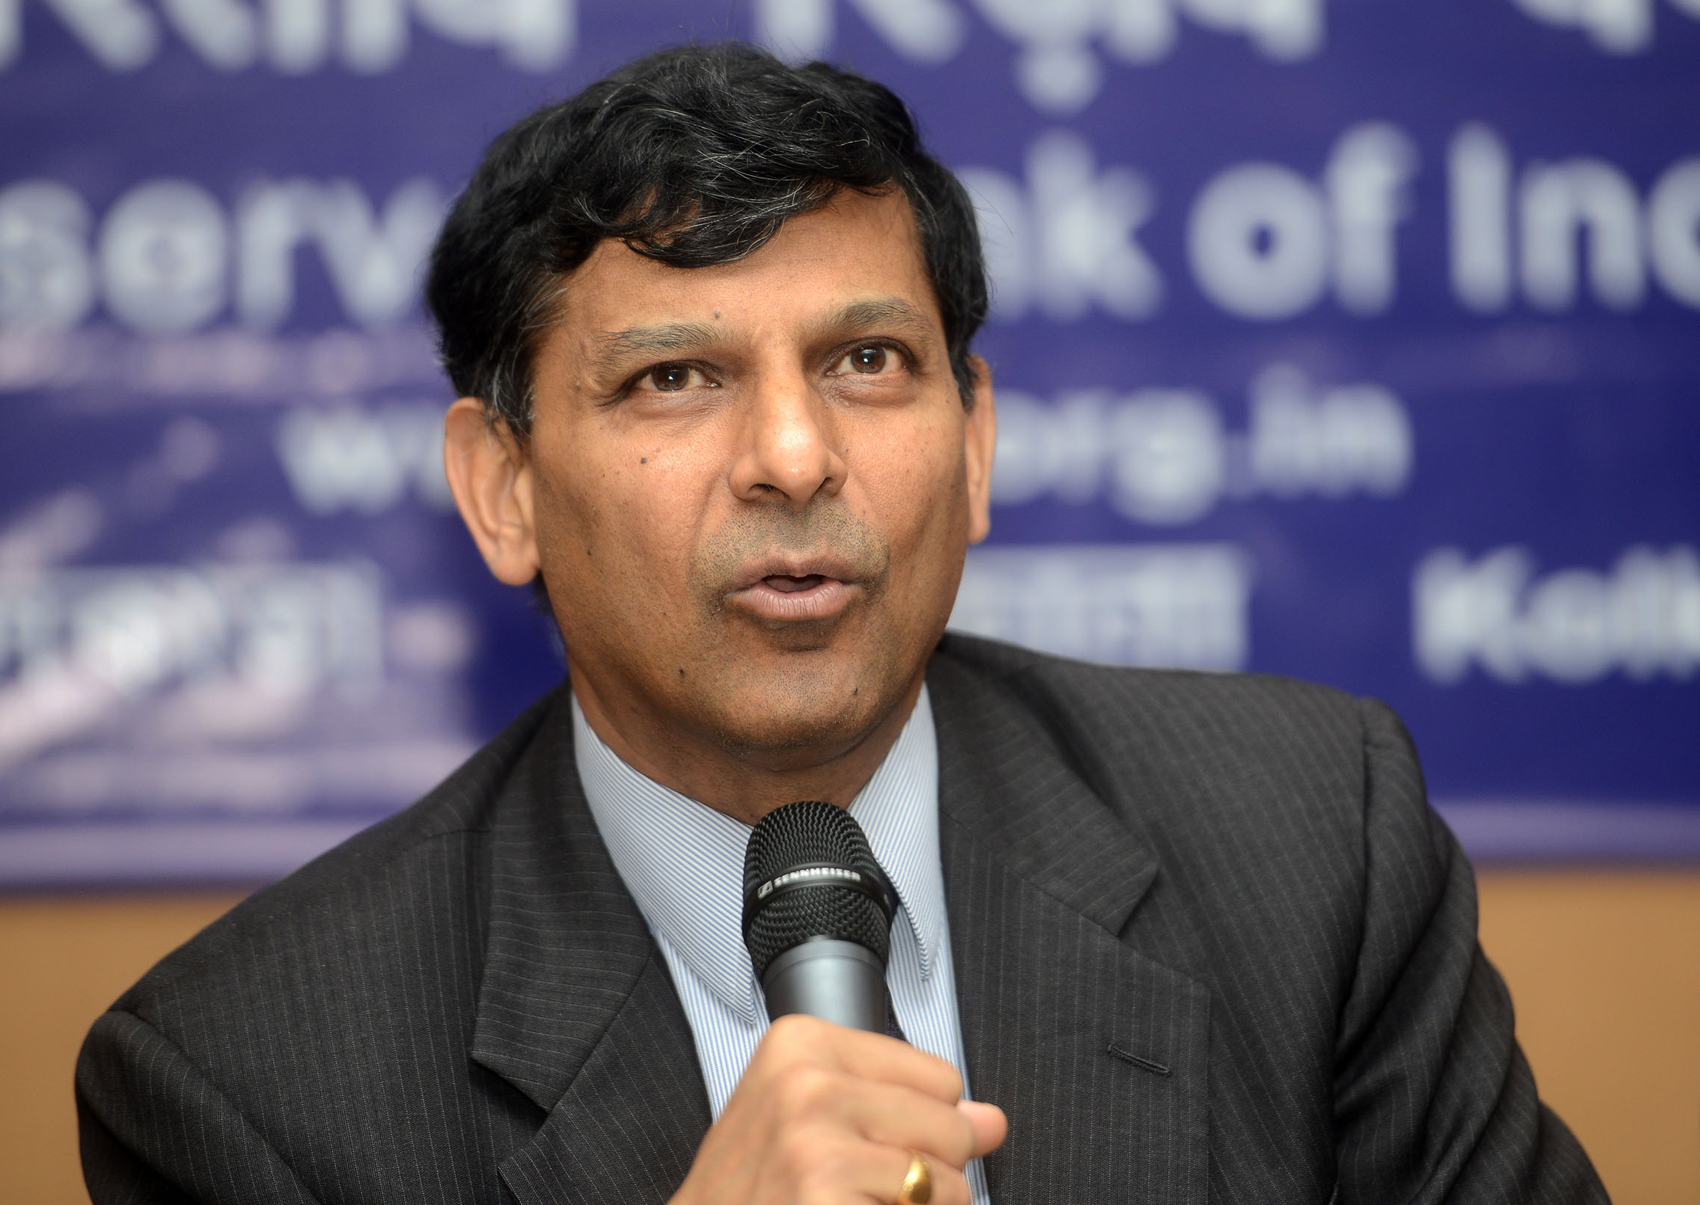 Rajan advice on the economy